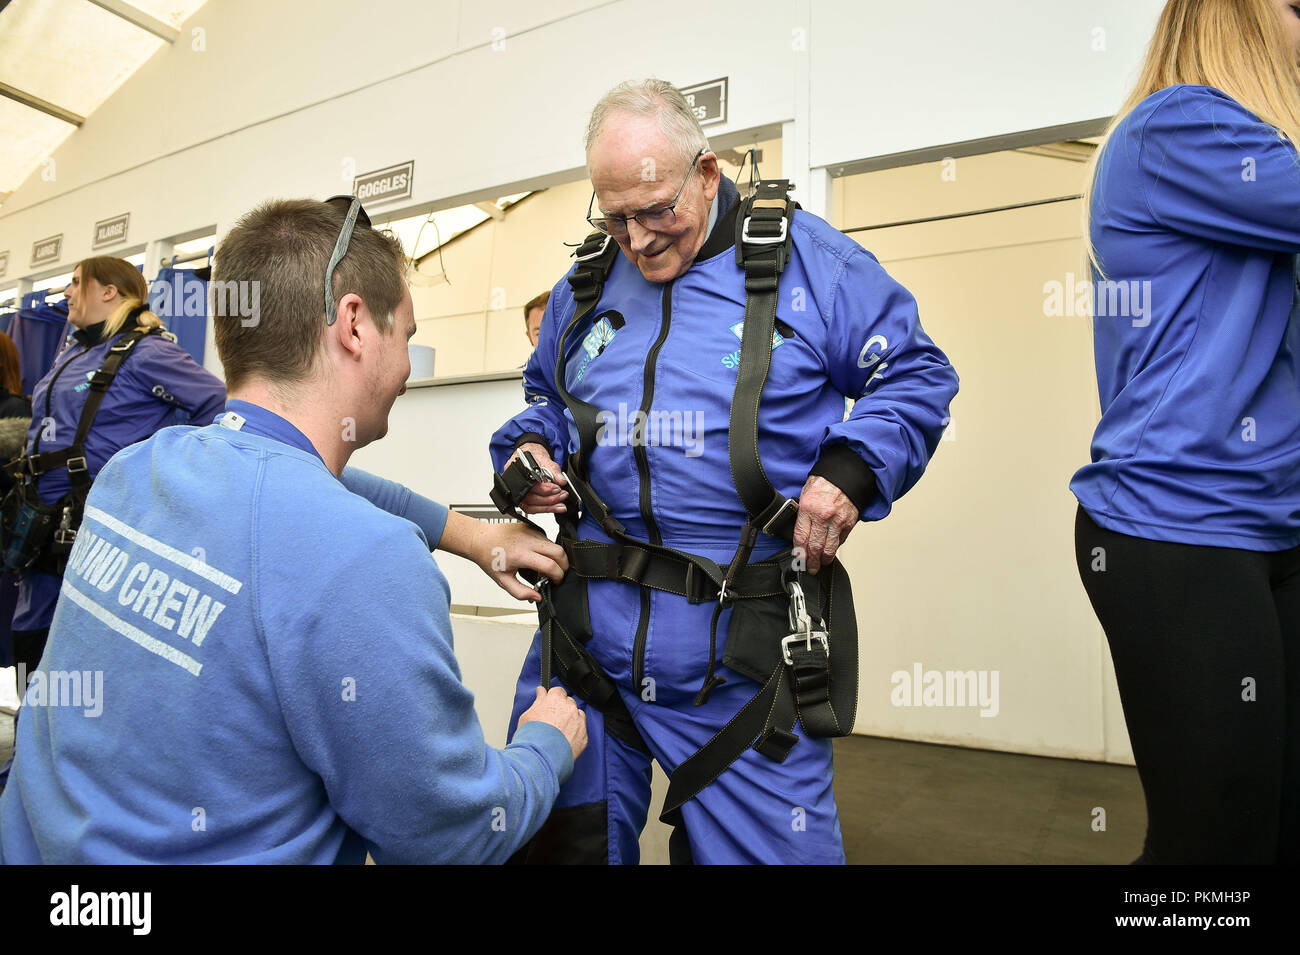 d day veteran harry read 94 is helped into his skydiving harness at old sarum airfield salisbury wiltshire where he is taking part in his first high level skydive since he parachuted into normandy on 6 june 1944 PKMH3P d day veteran harry read, 94, is helped into his skydiving harness